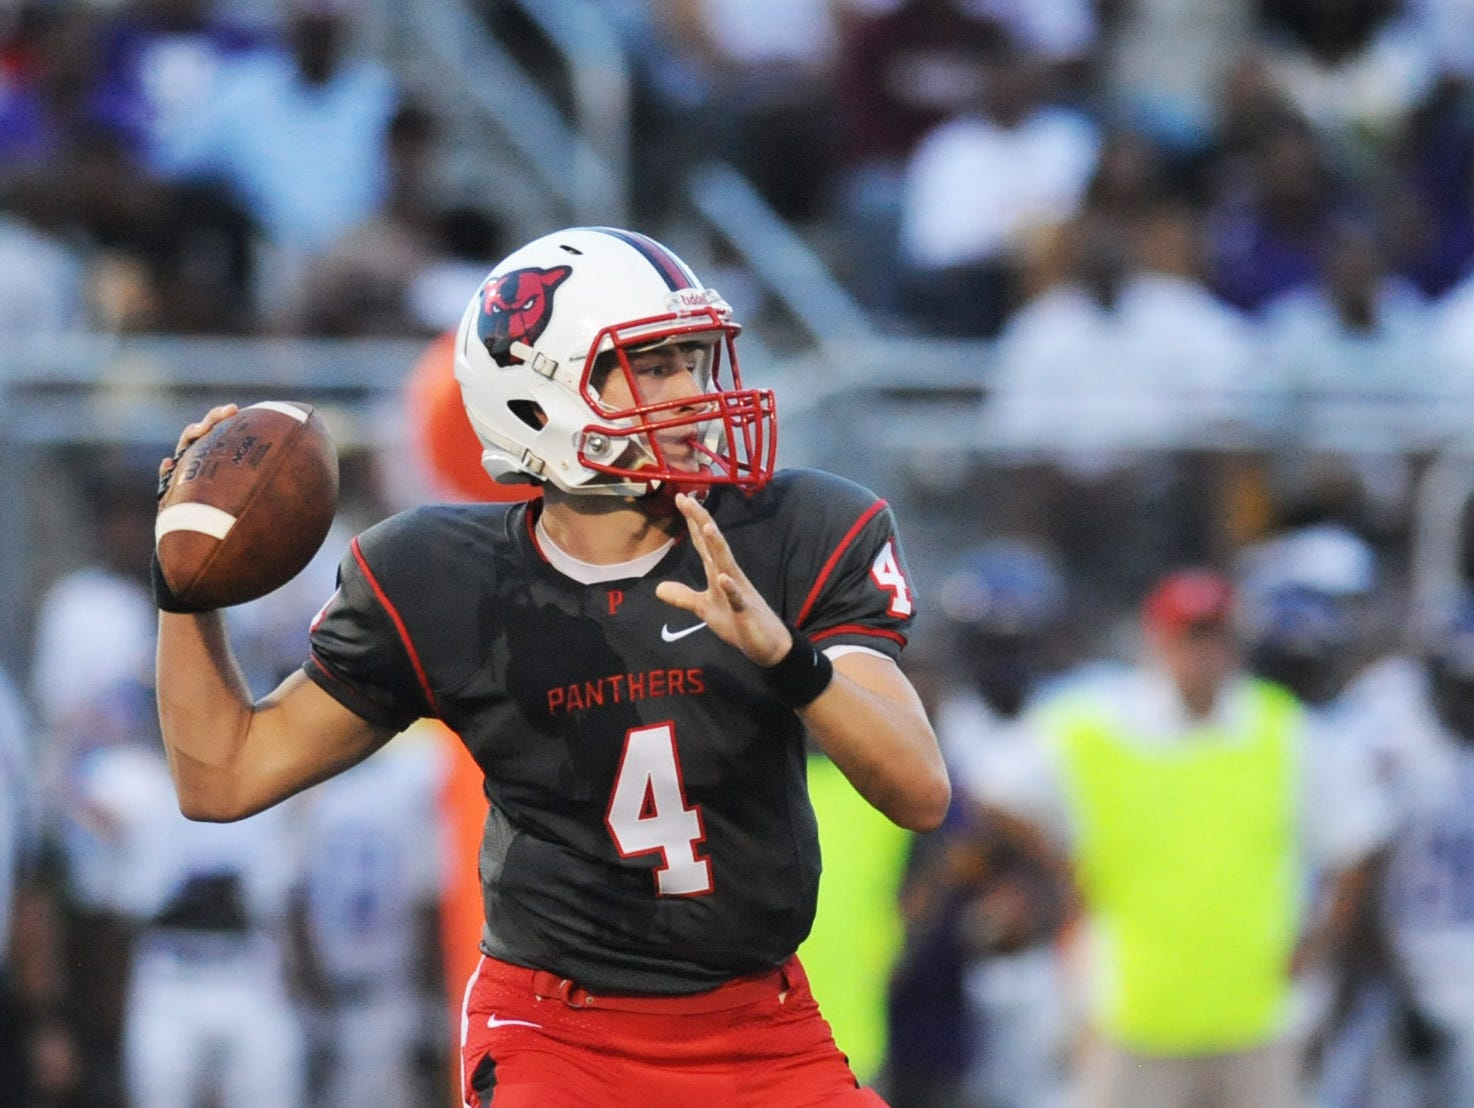 Petal's Samuel Hopper (4) prepares to throw the ball Saturday at the opening game of the season against Hattiesburg High.